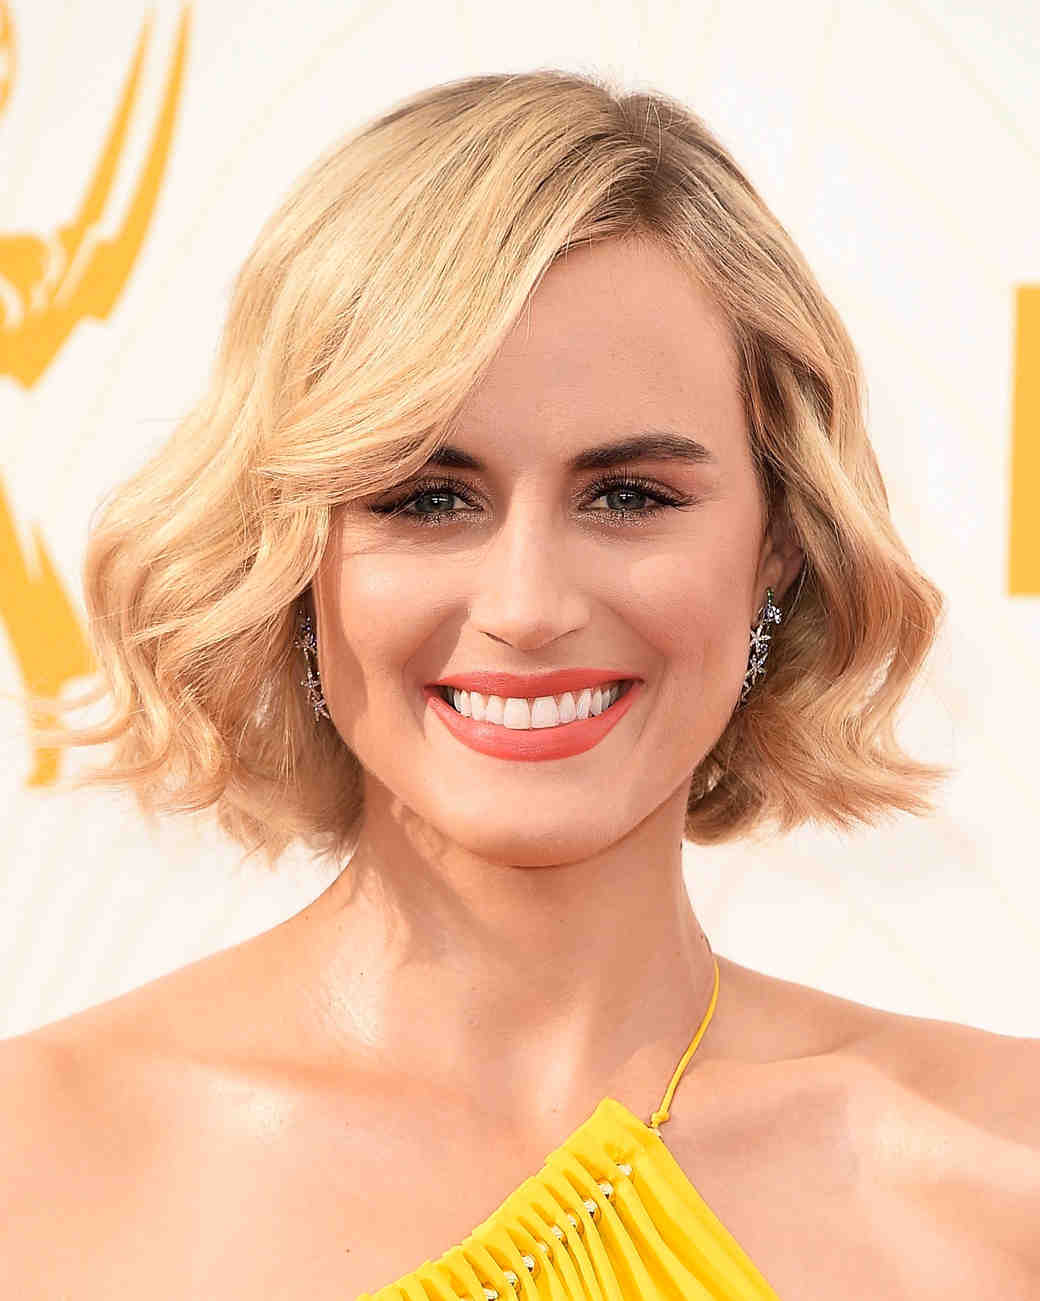 celebrity-wedding-hair-taylor-schilling-emmys-0915.jpg